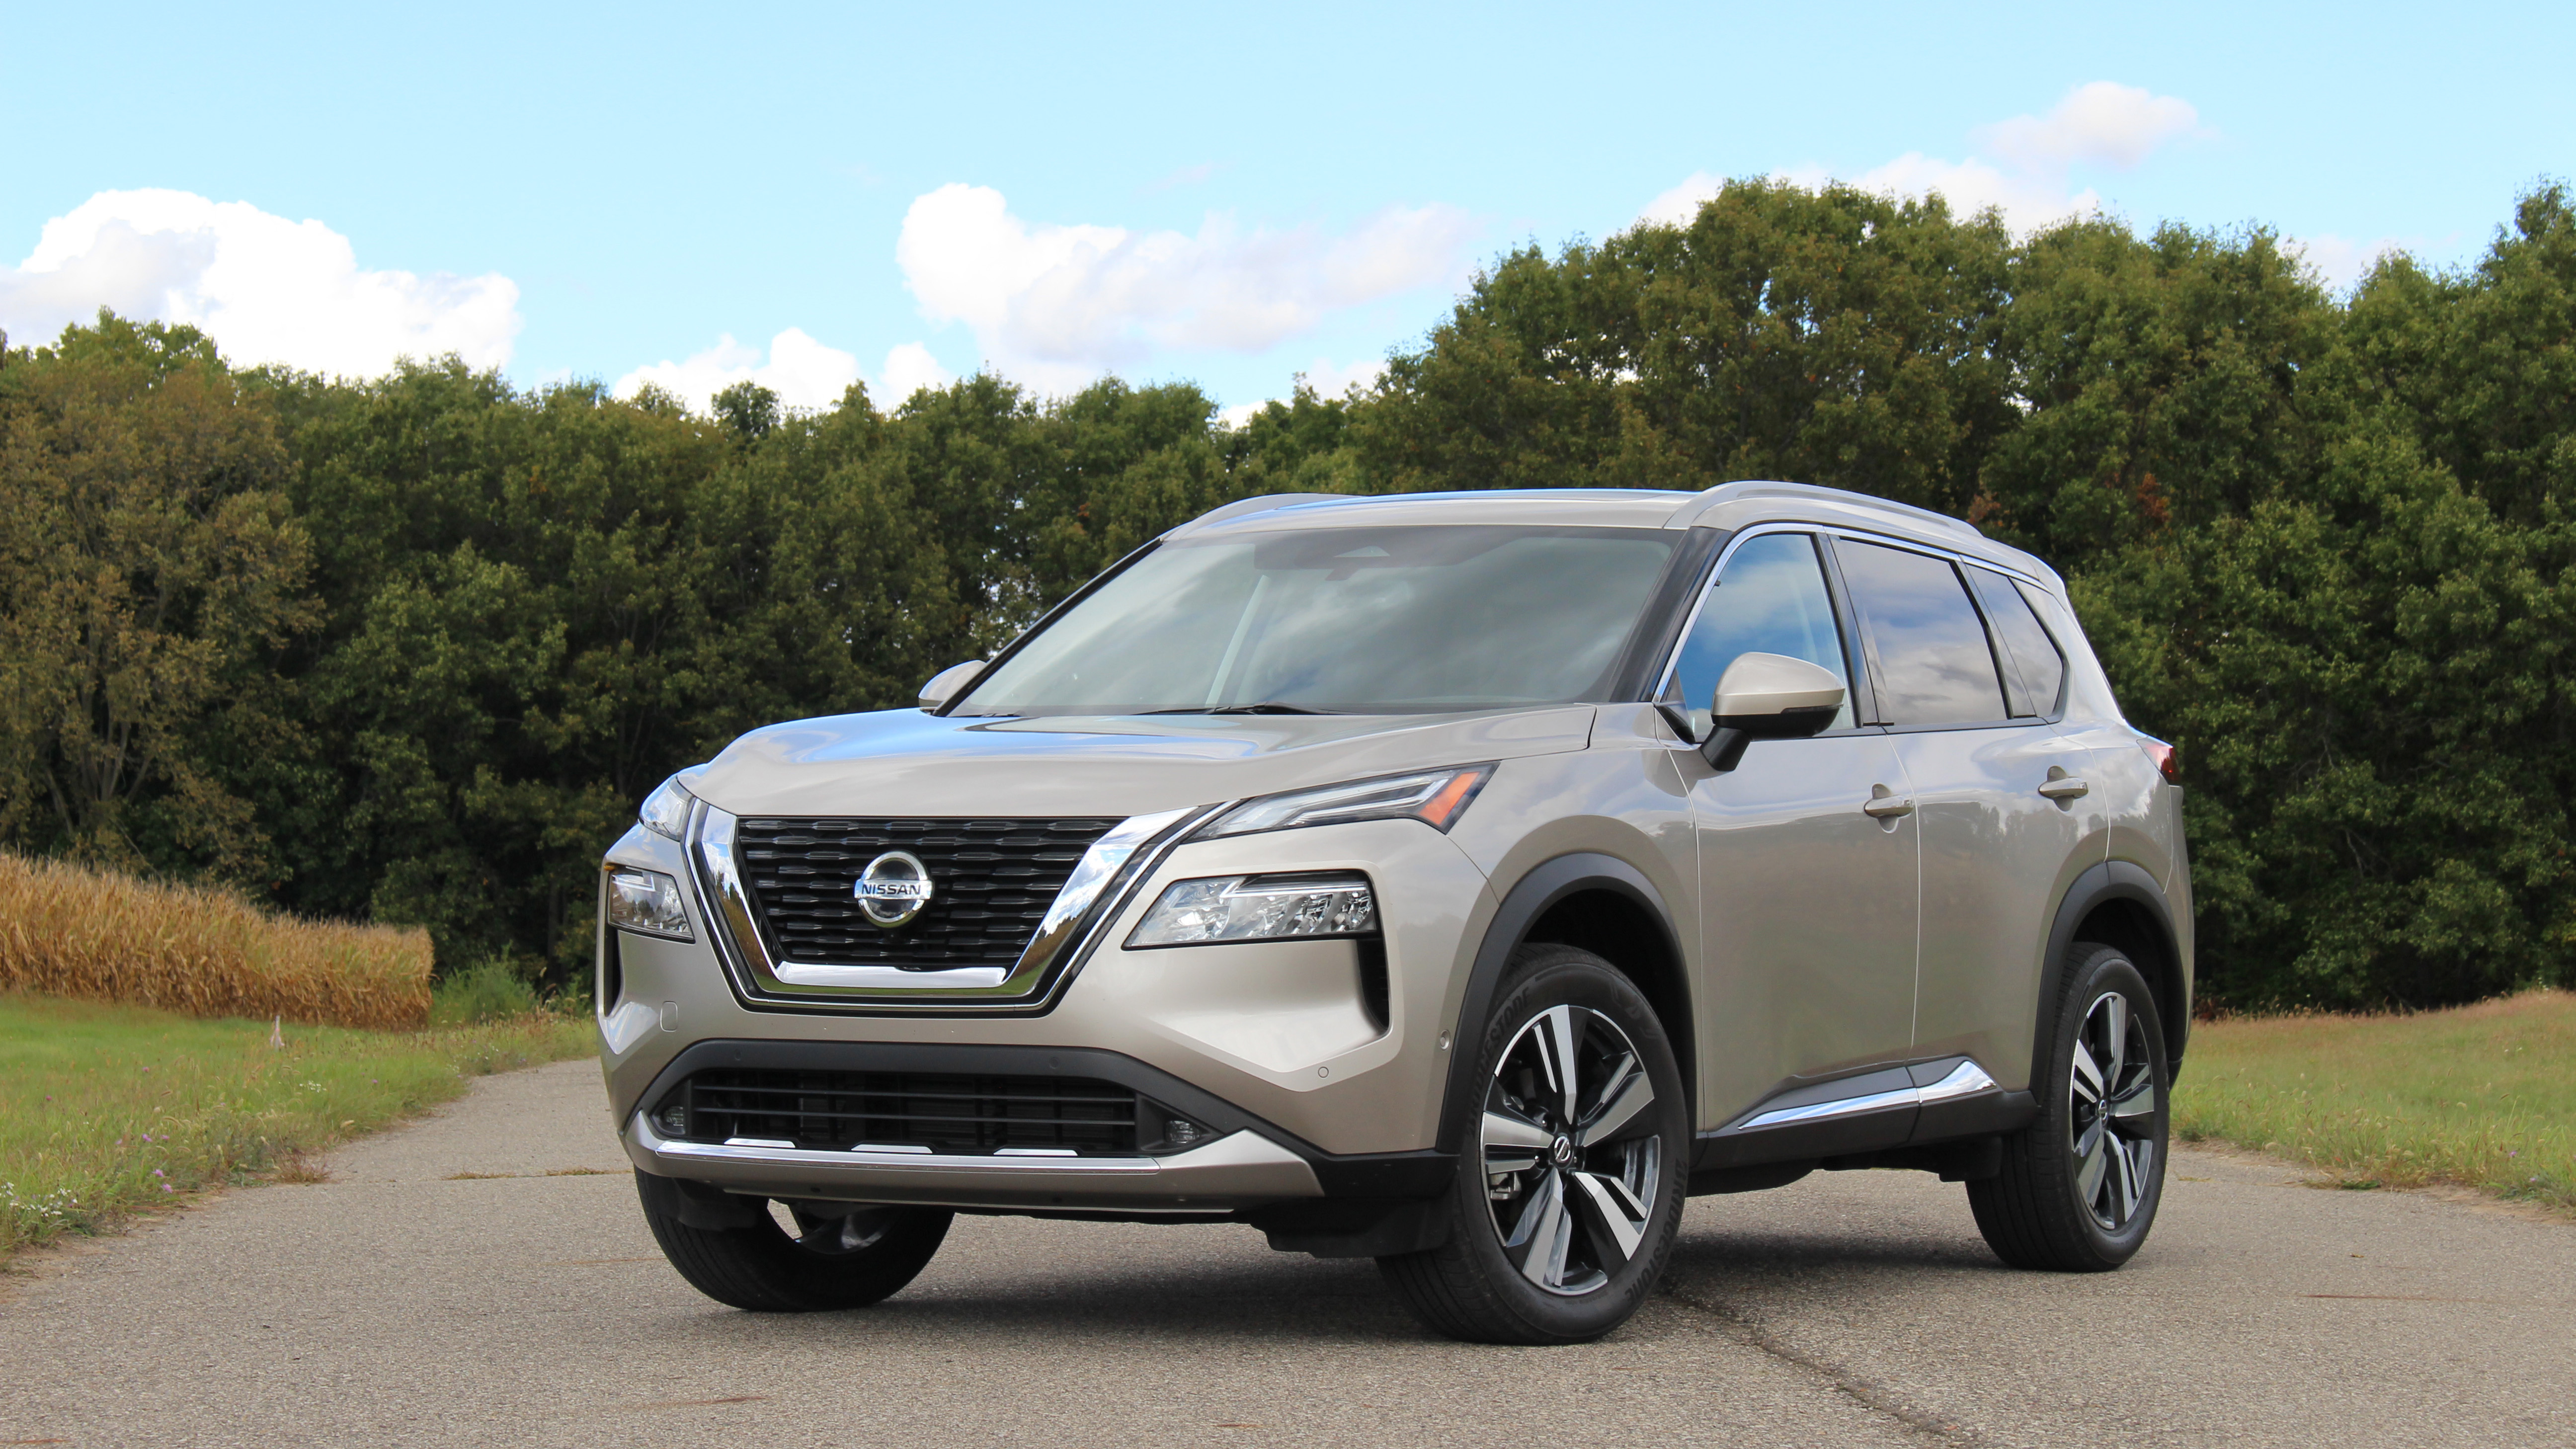 2021 nissan rogue review | prices, specs, features and